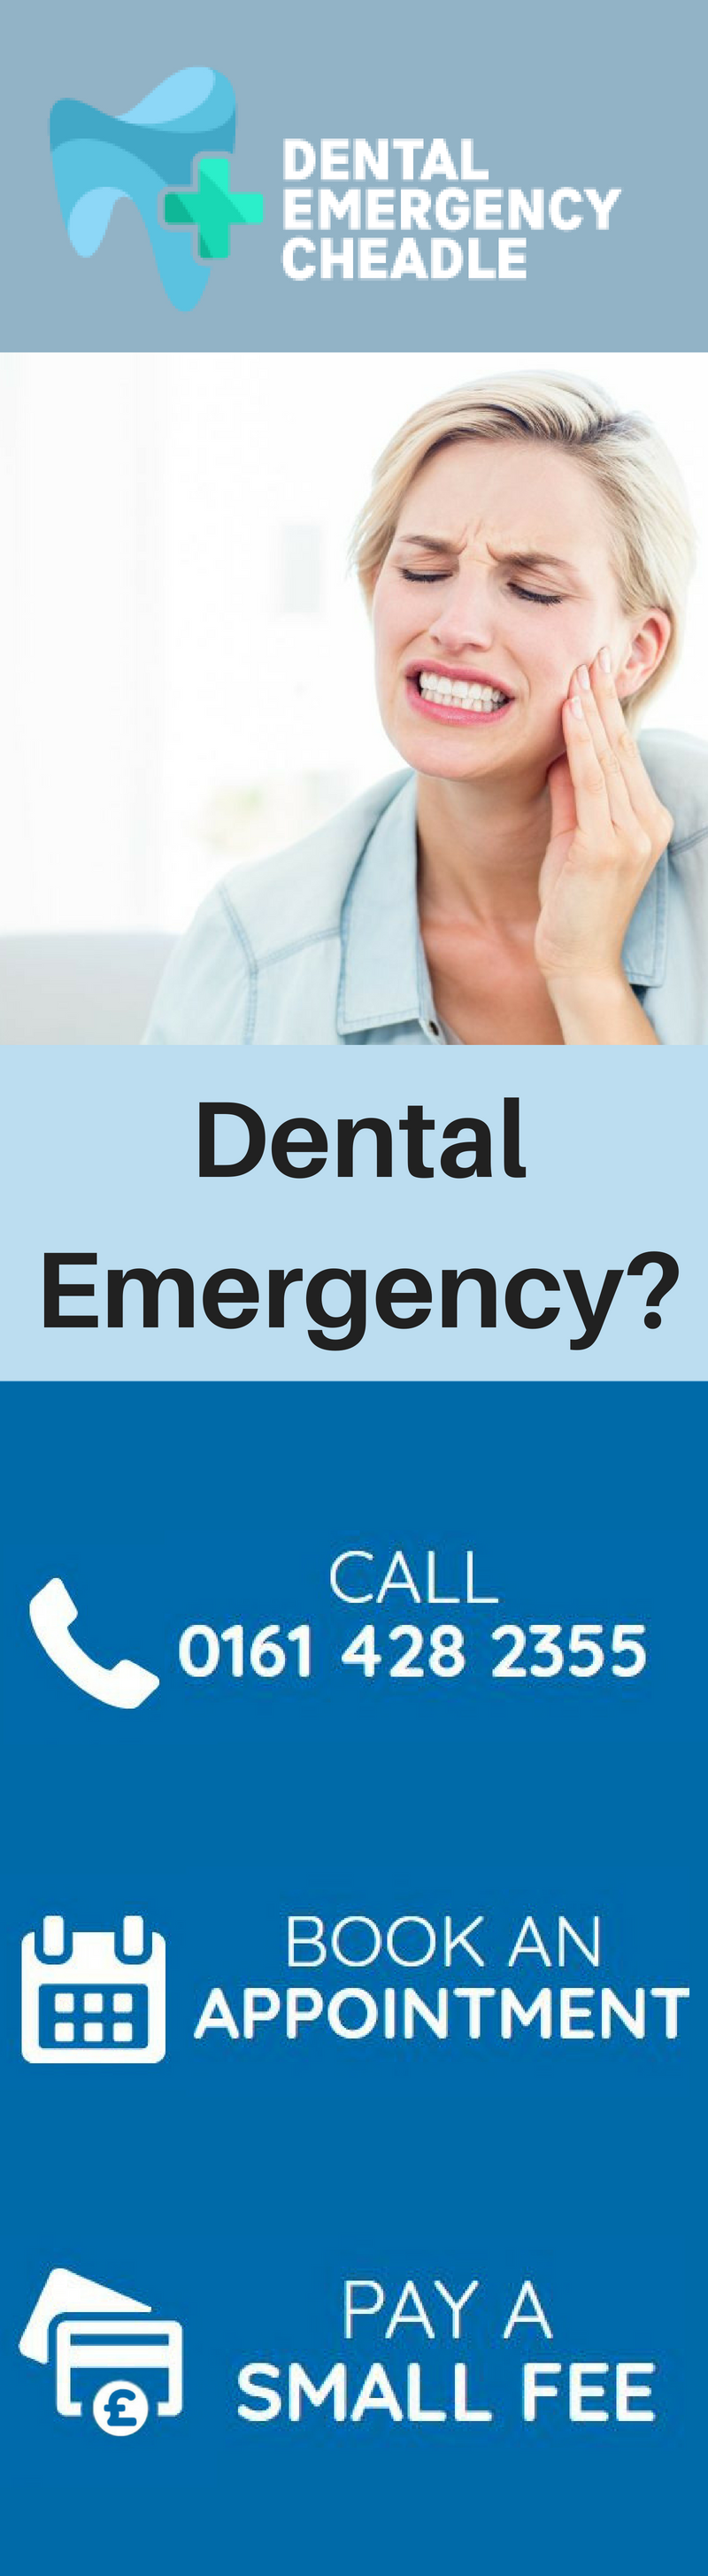 have a dental emergency?